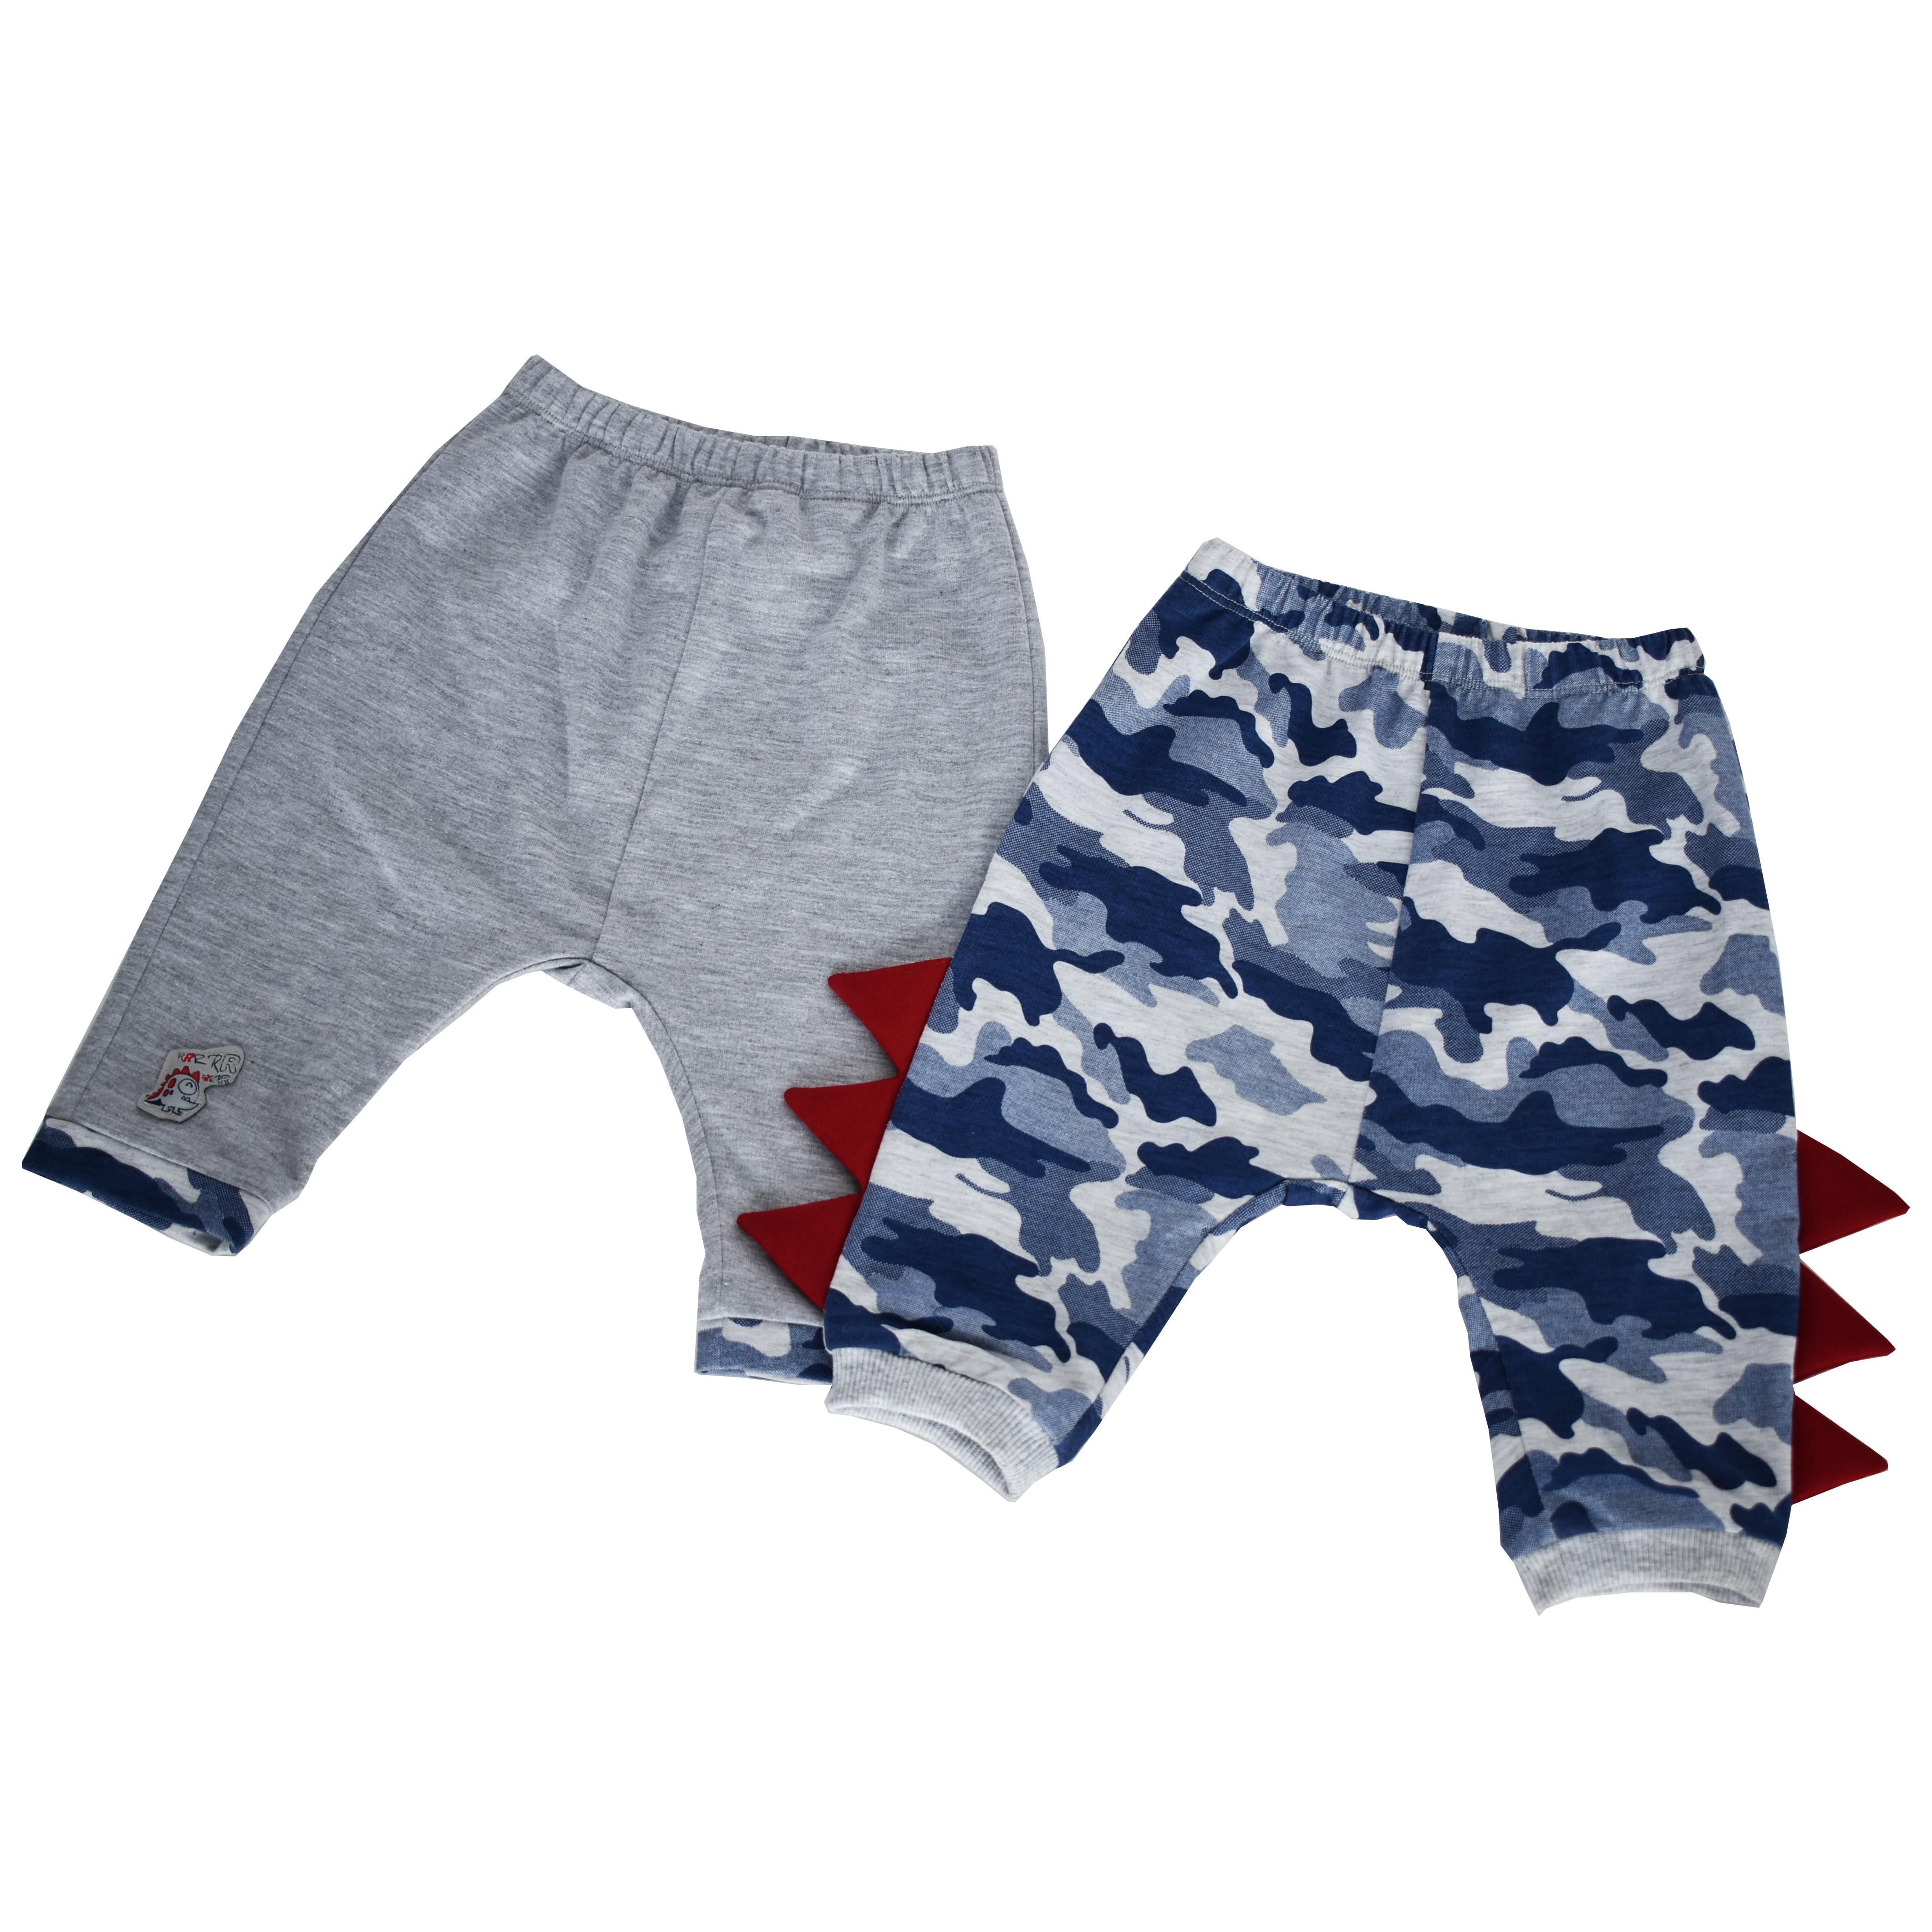 f92f724bd Baby Boys' Clothing - Buy Baby Boys' Clothing at Best Price in ...